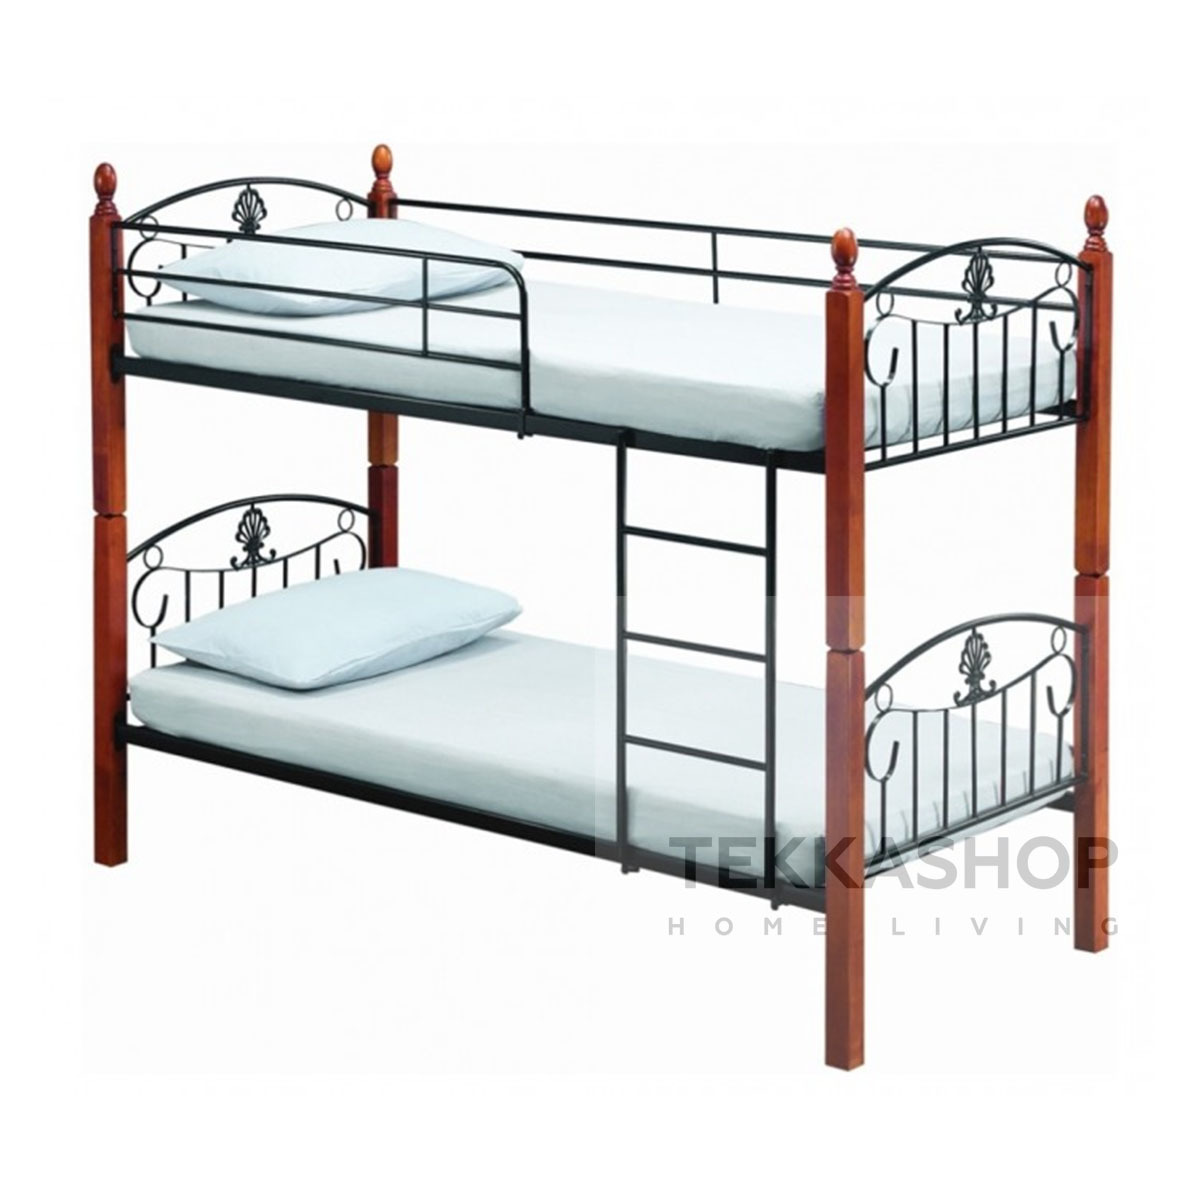 Tekkashop Gdbb2783bl Wooden Metal Frame Double Decker Bunk Bed Metal Bed Frame Single X2 Not Includes Mattress